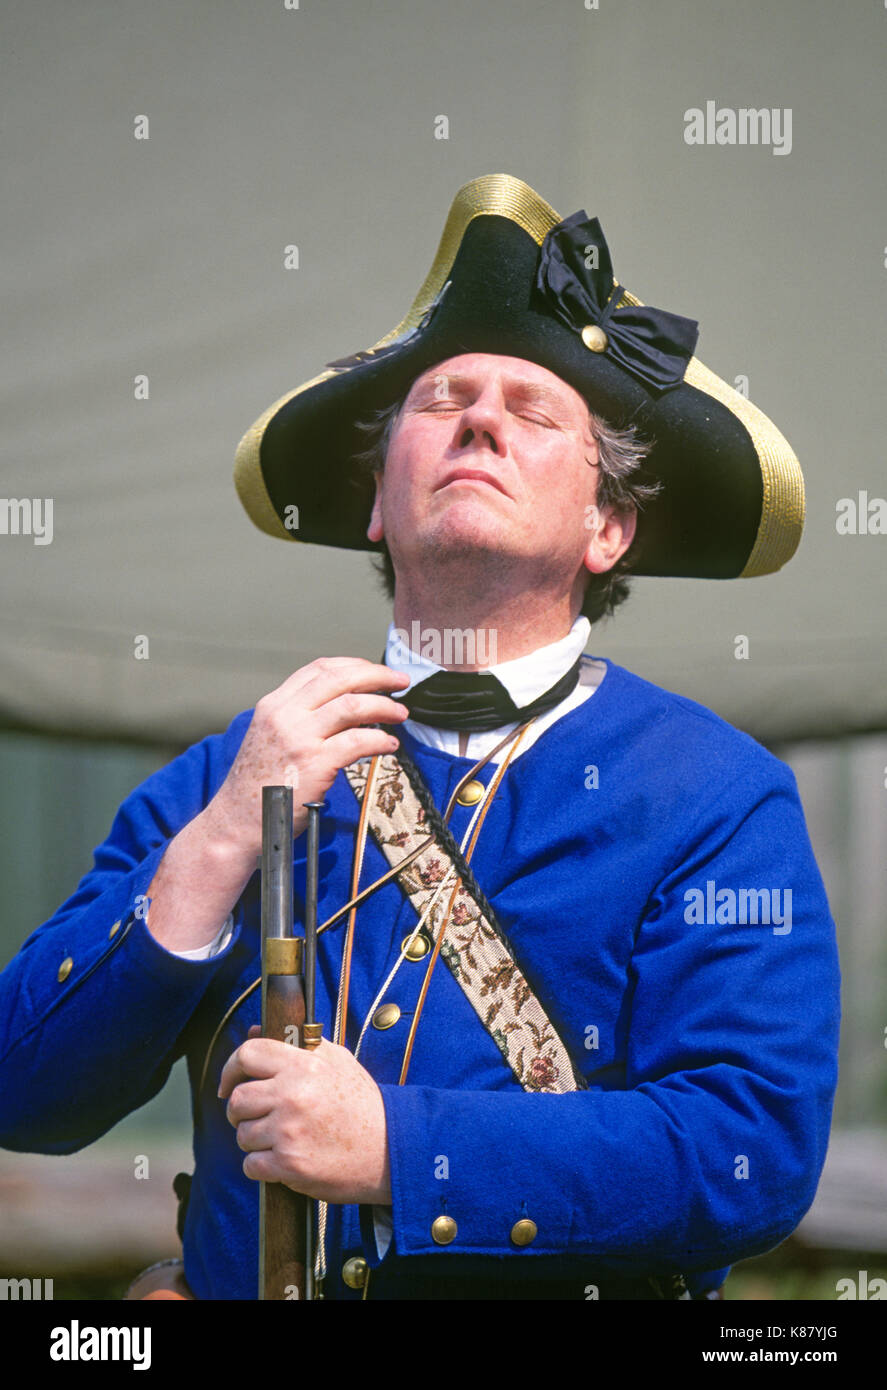 A man with a muzle loading rifle dressed in a Revolutionary War French Army uniform and wearing a tricorn hat. - Stock Image